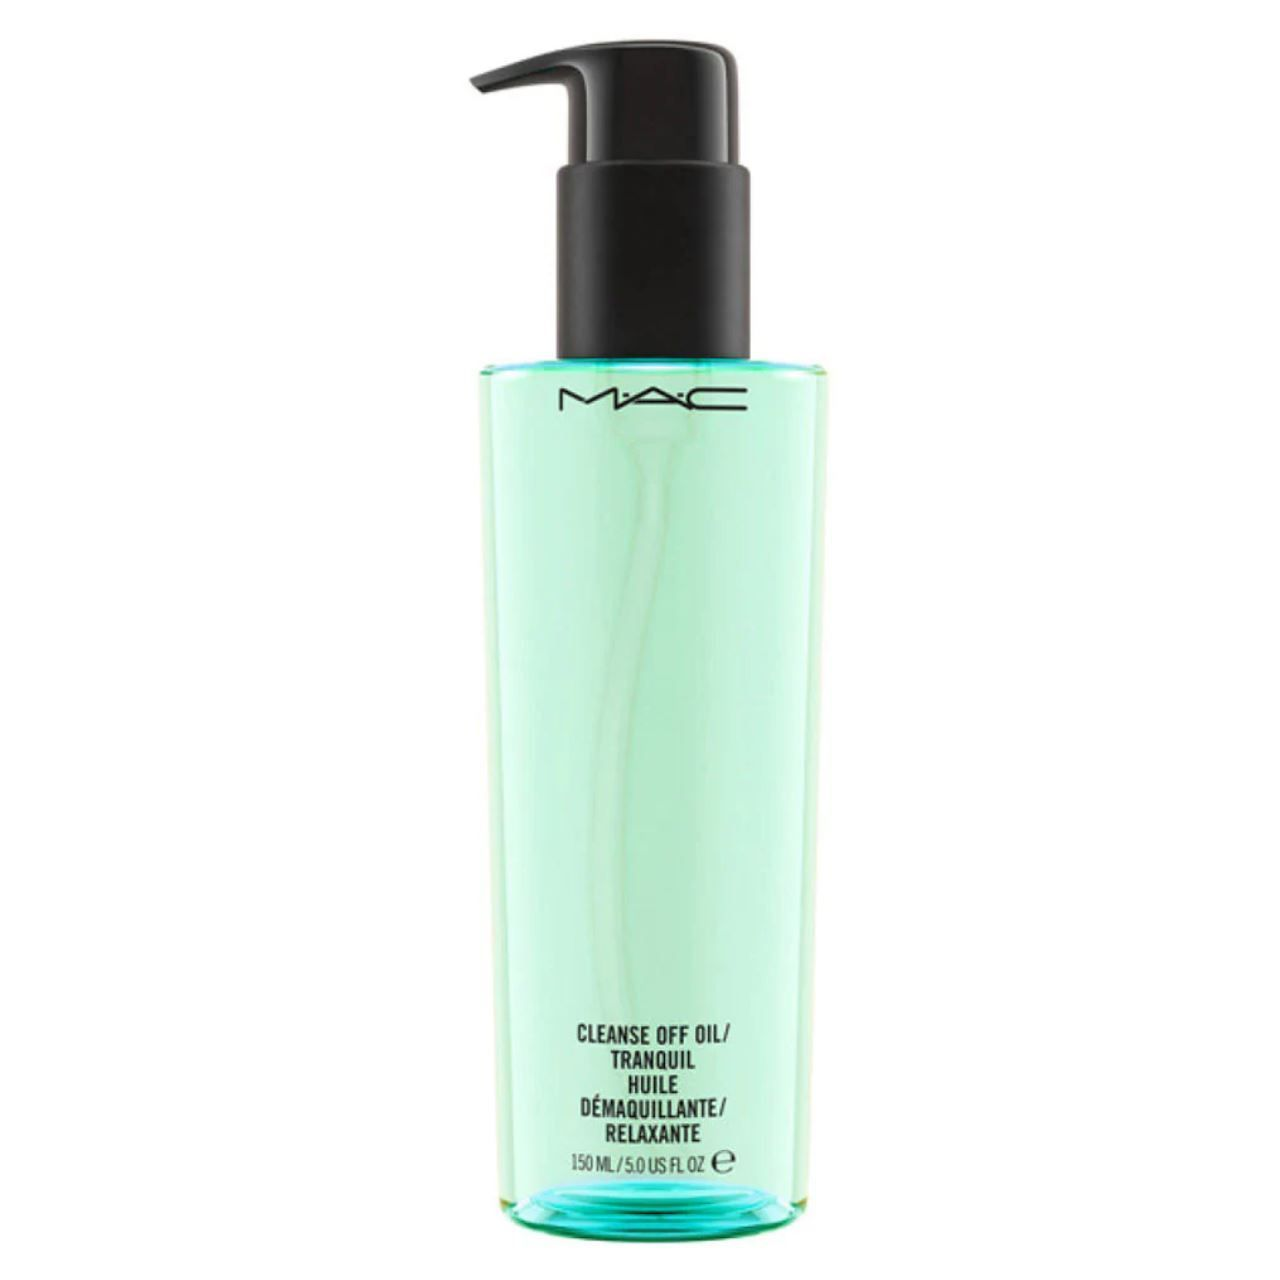 mac cleanse off oil review